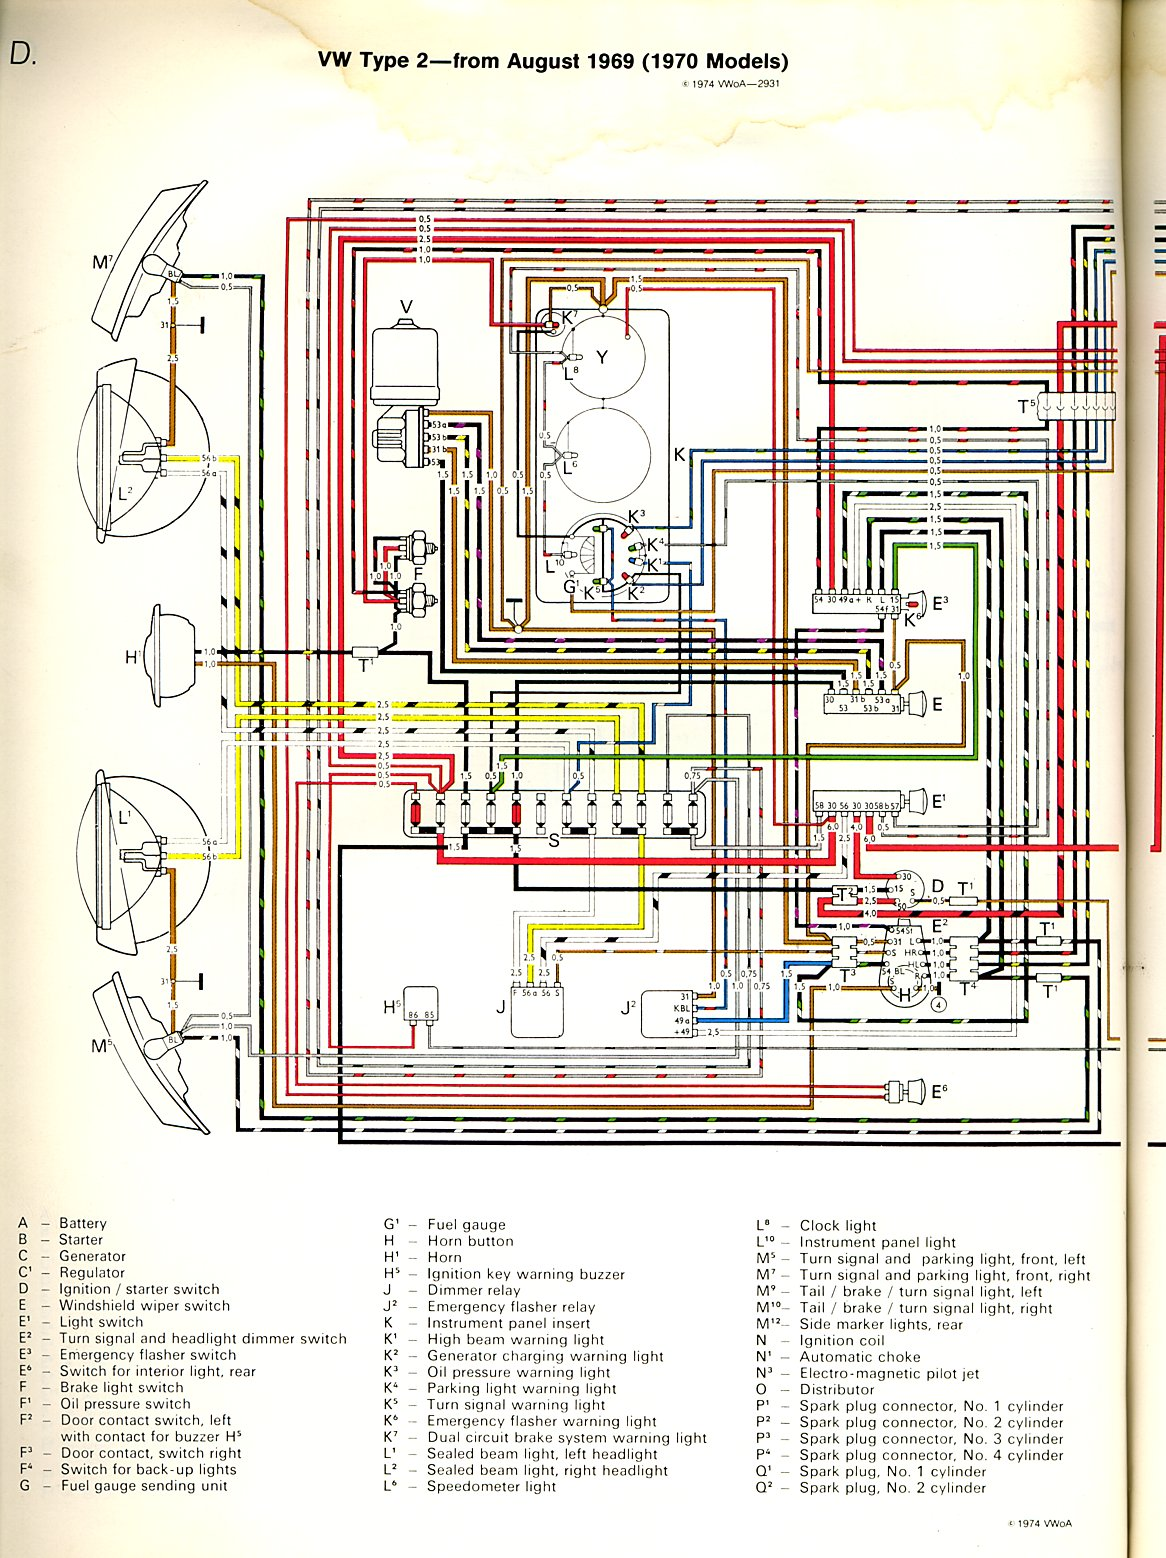 baybus_70a thesamba com type 2 wiring diagrams vw t4 fuse box wiring diagram at mifinder.co